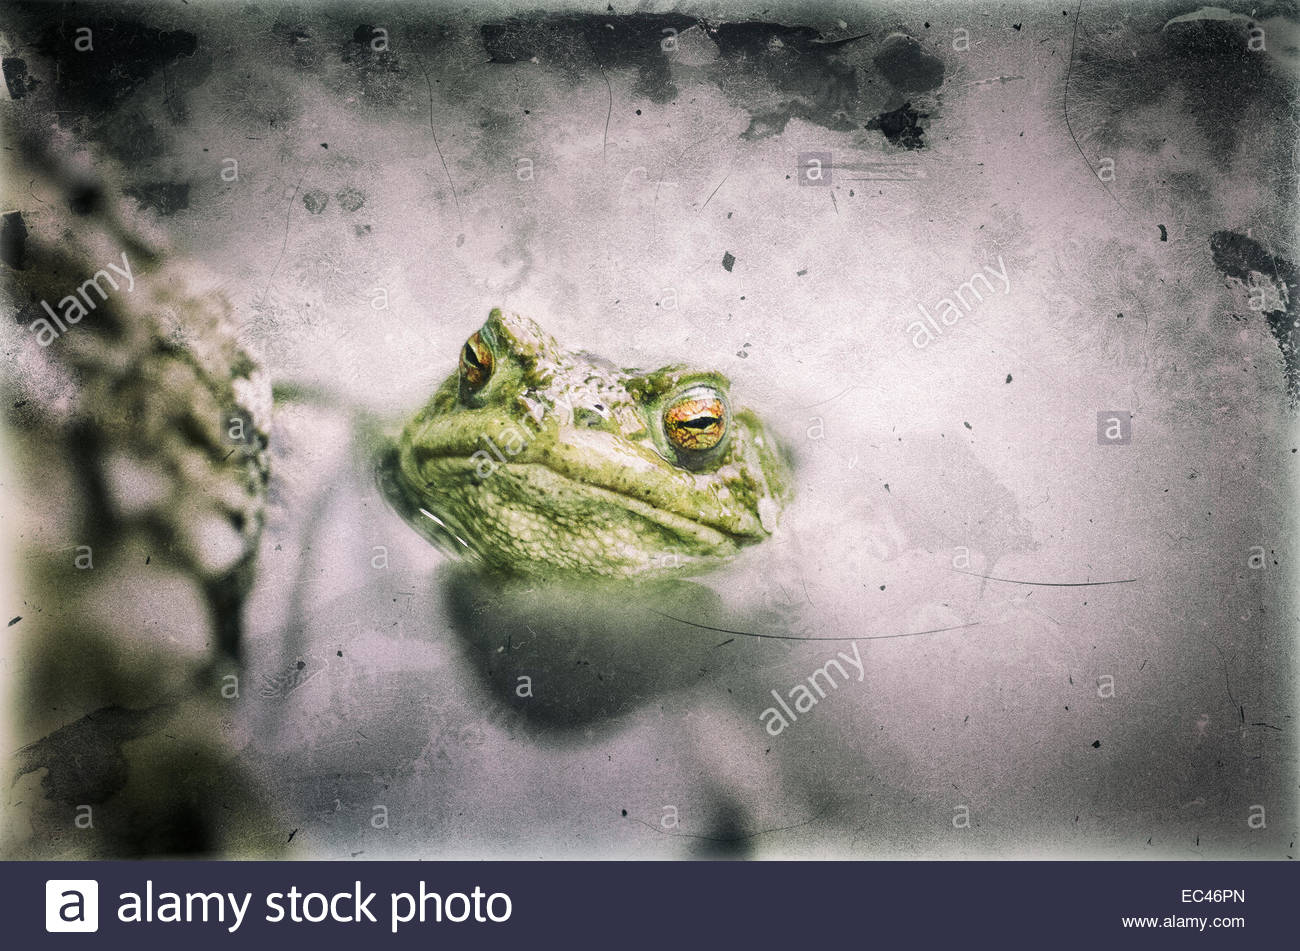 Common Toad, Bufo bufo, in a pond, filtered with aging and scratches effects - Stock Image